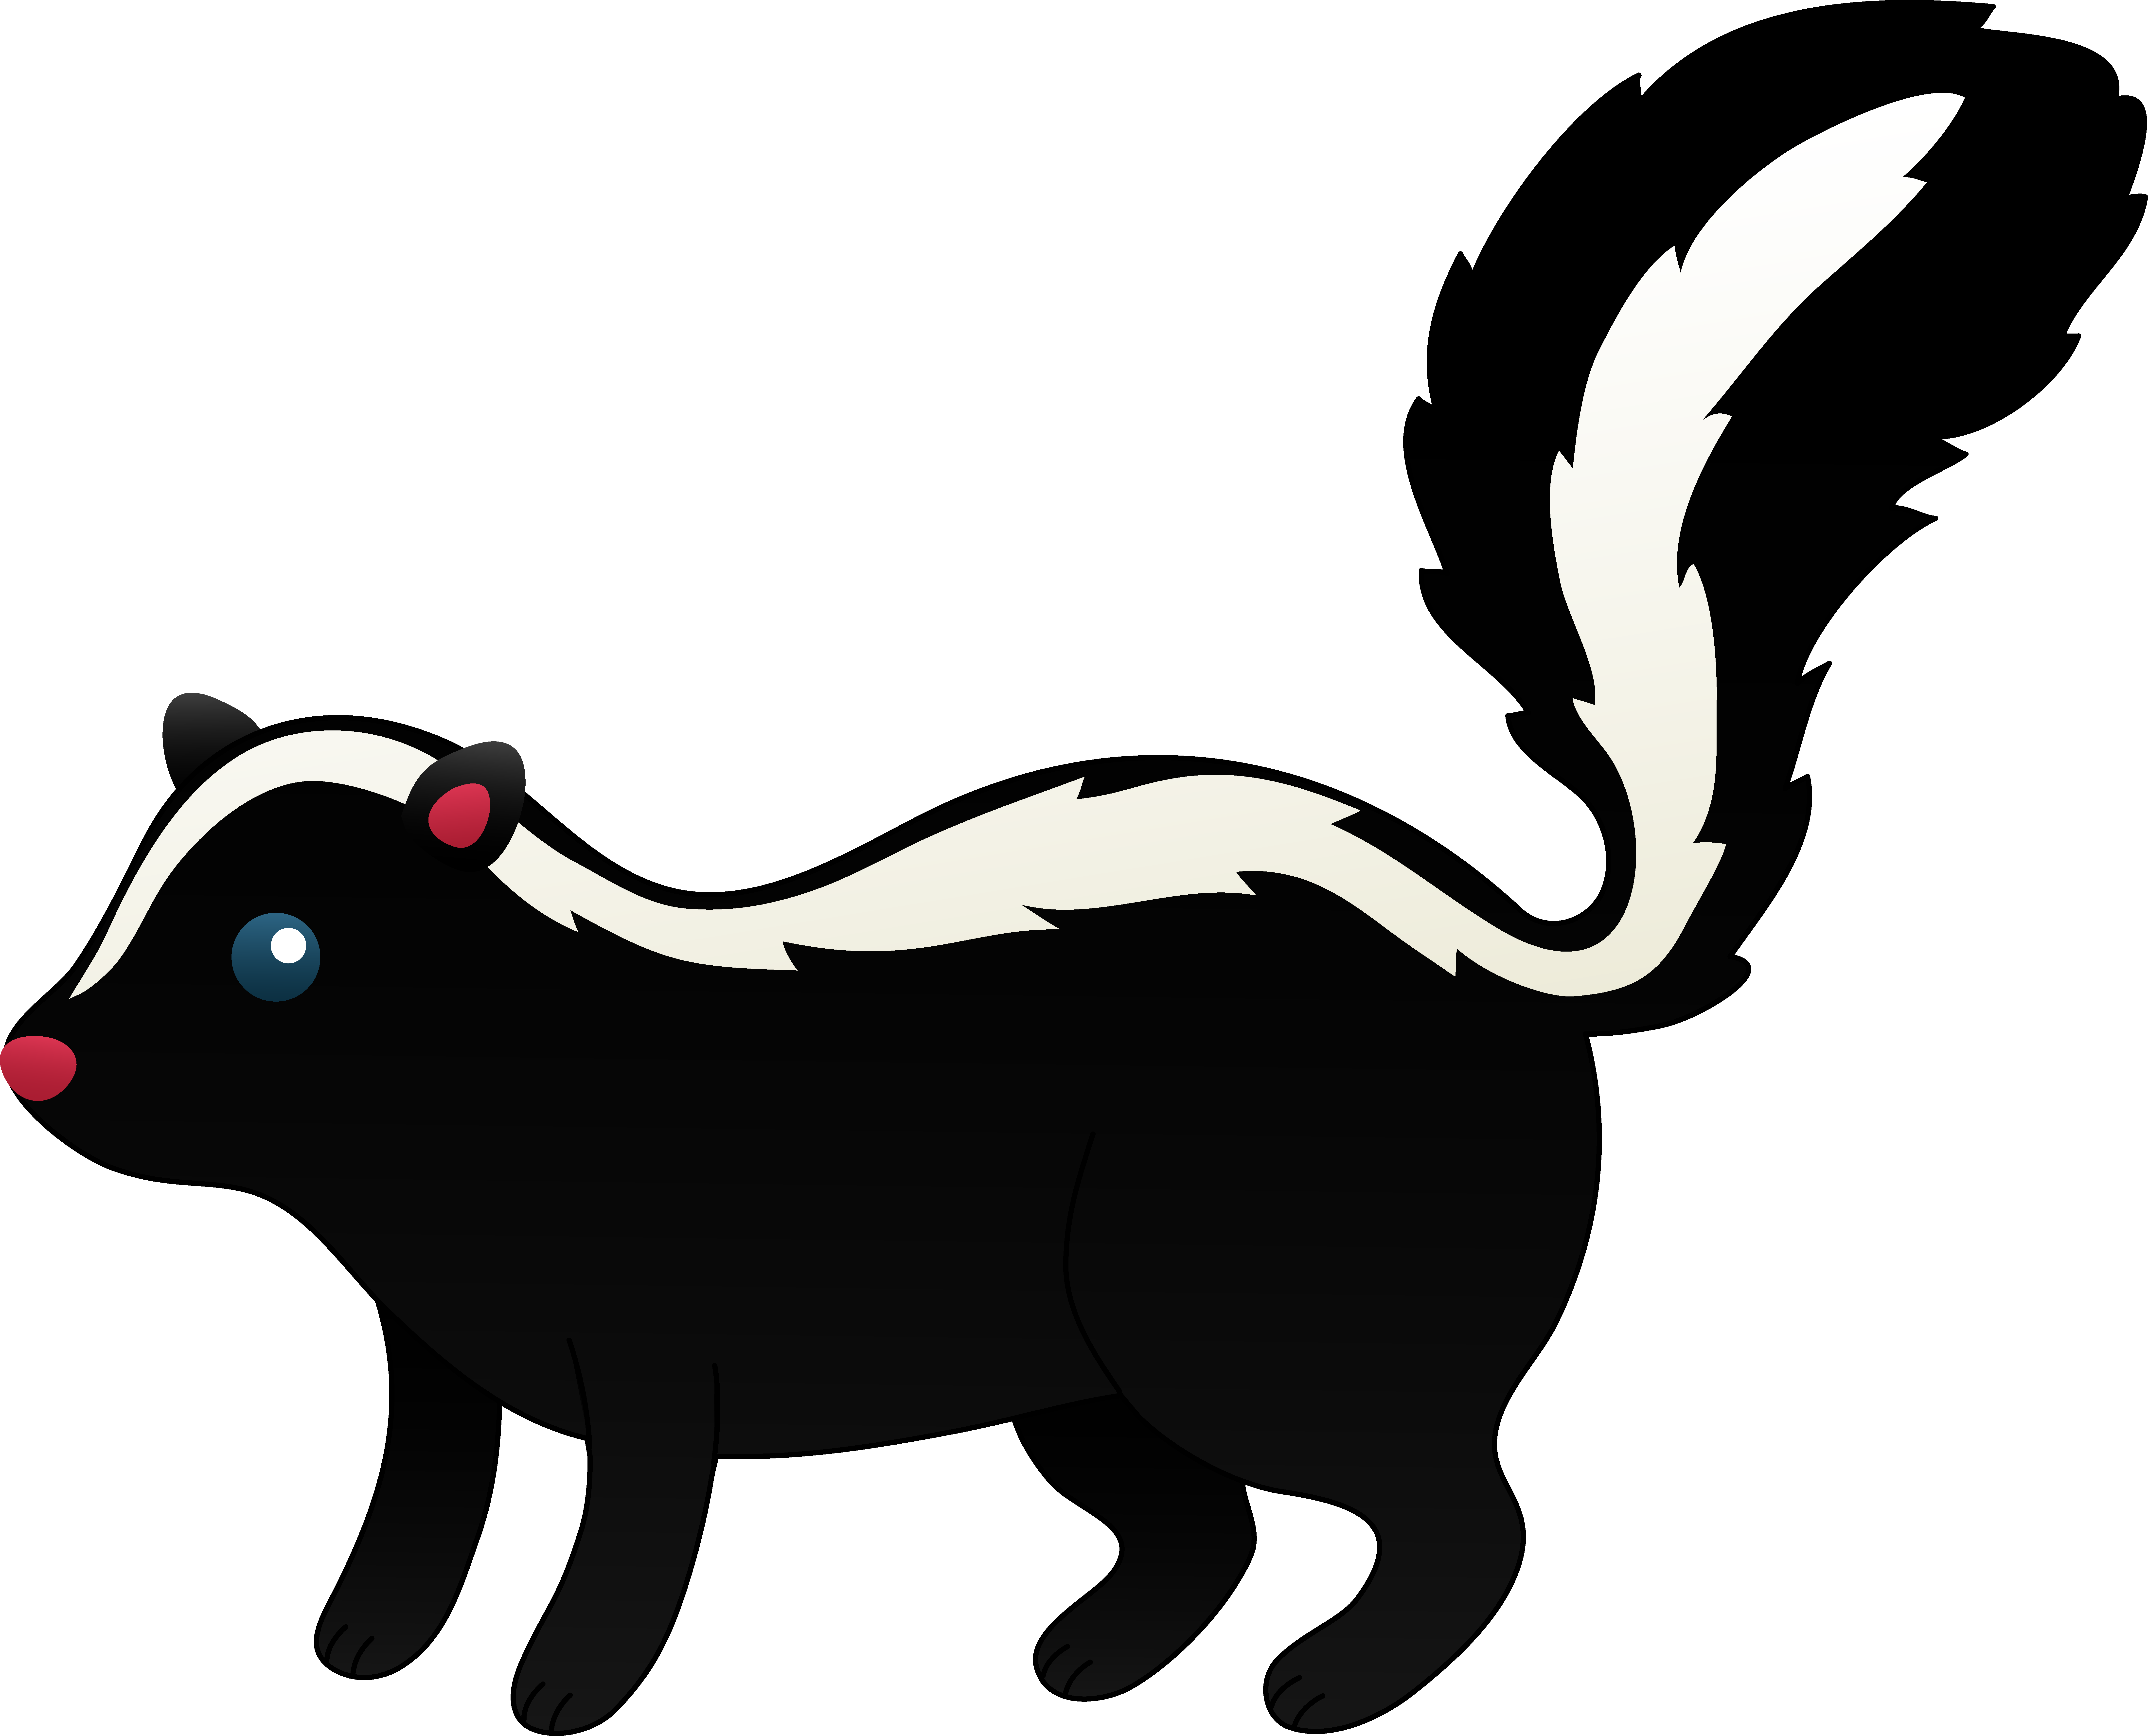 Skunk Clipart - Cliparts.co